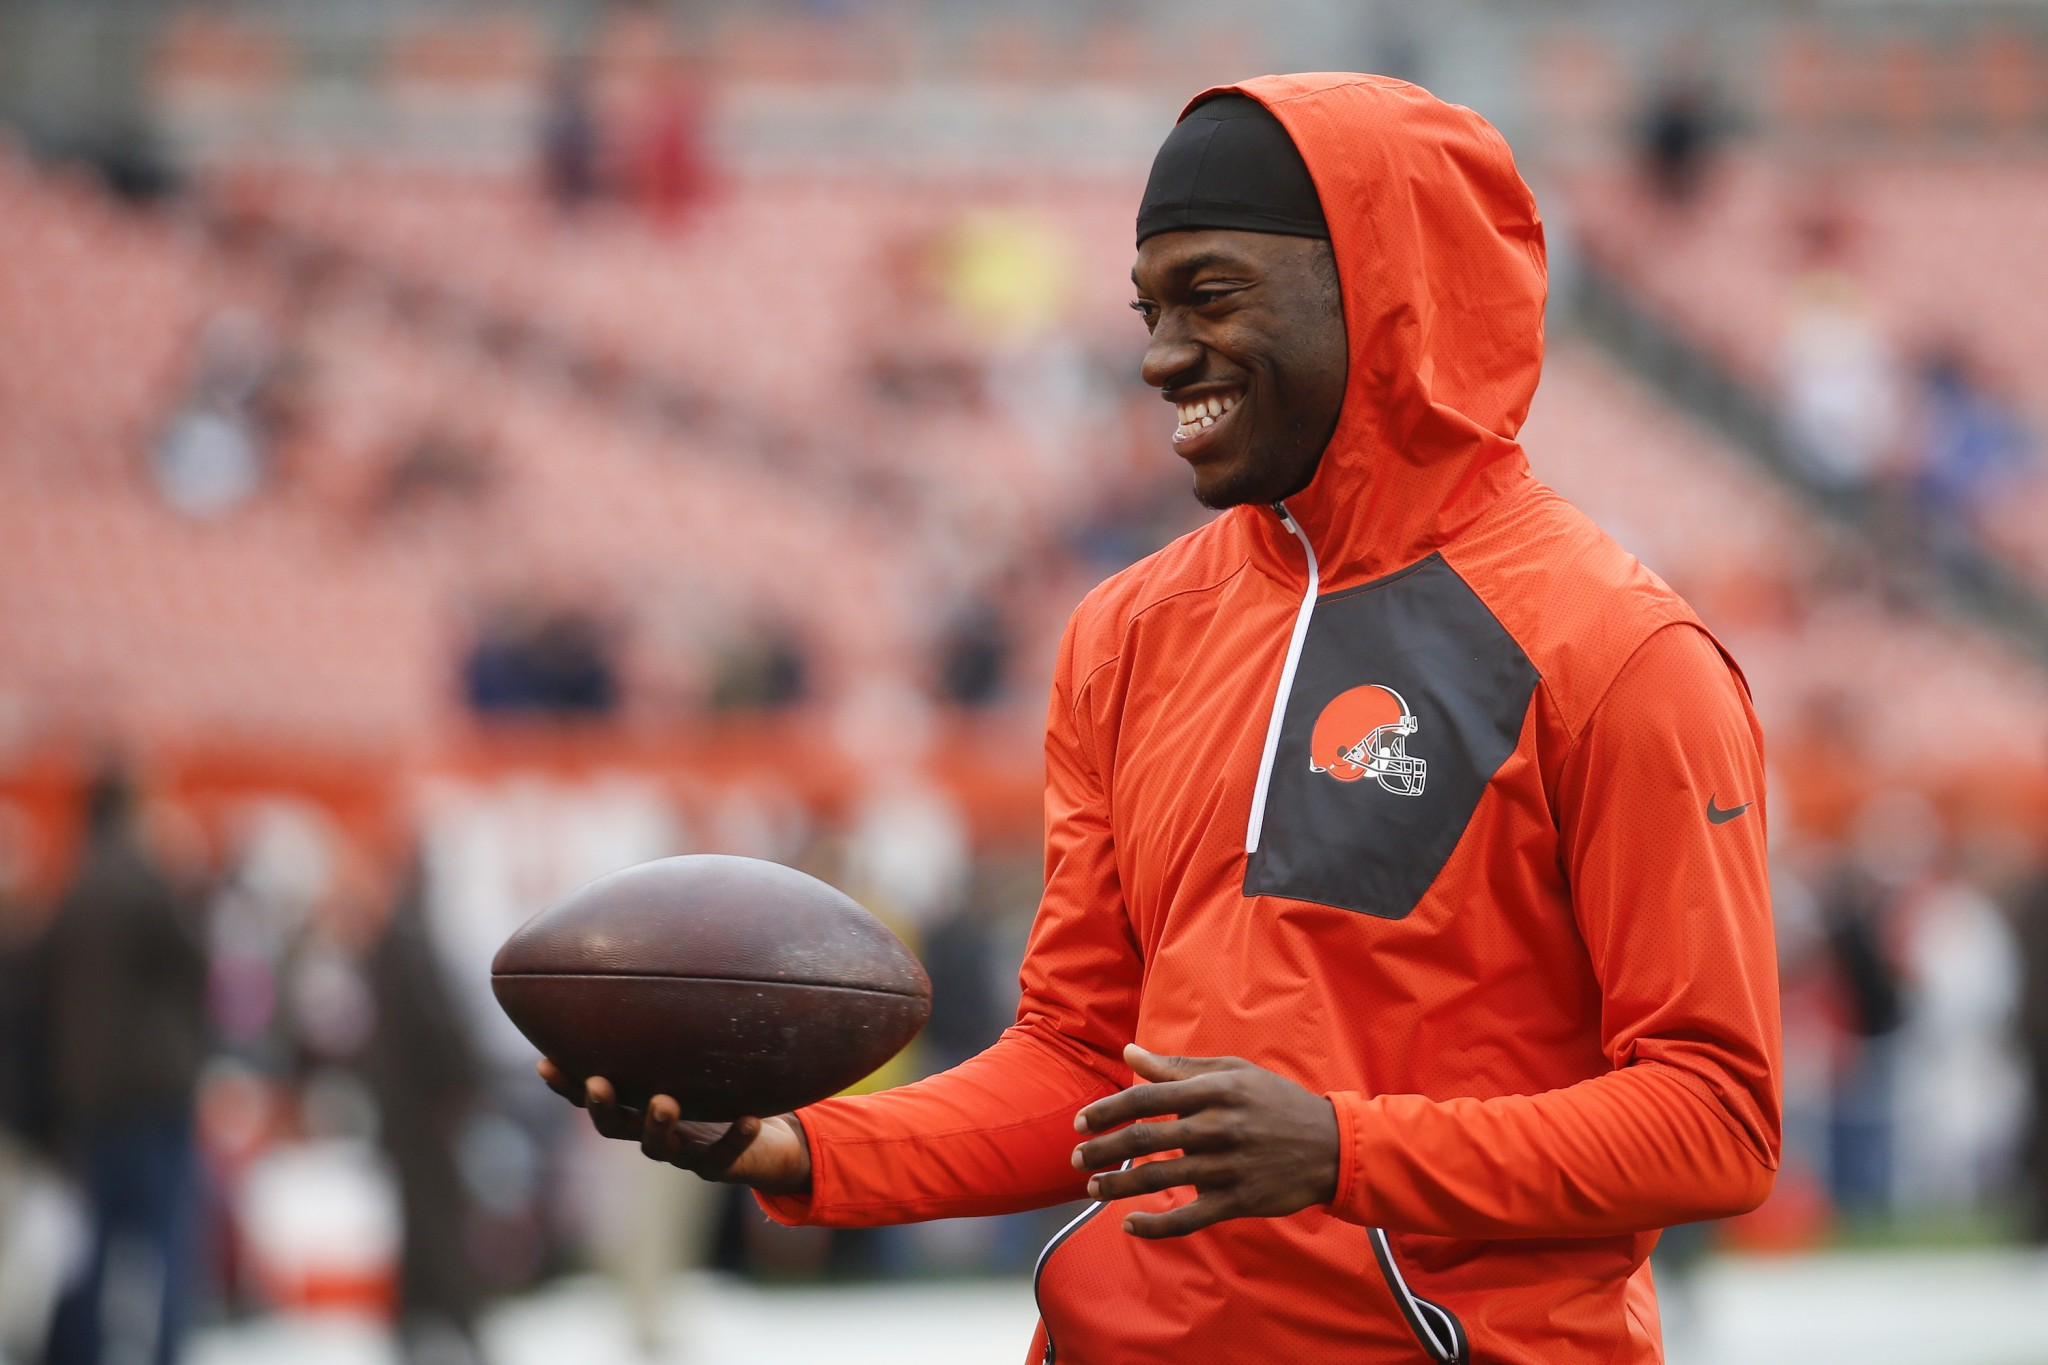 Browns officially activate RG3